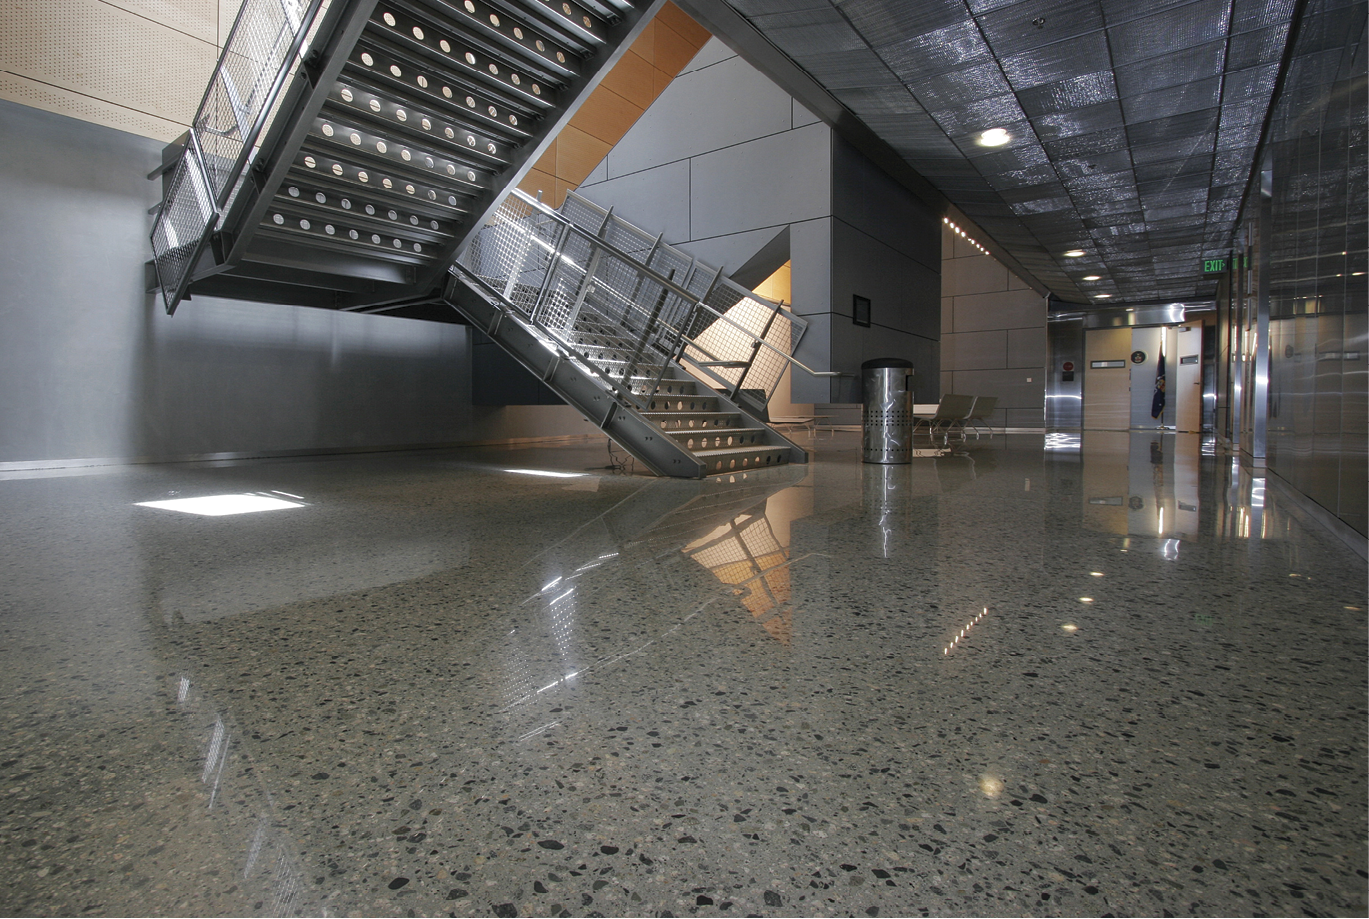 Ground and polished concrete floor in an industrial style business office building.